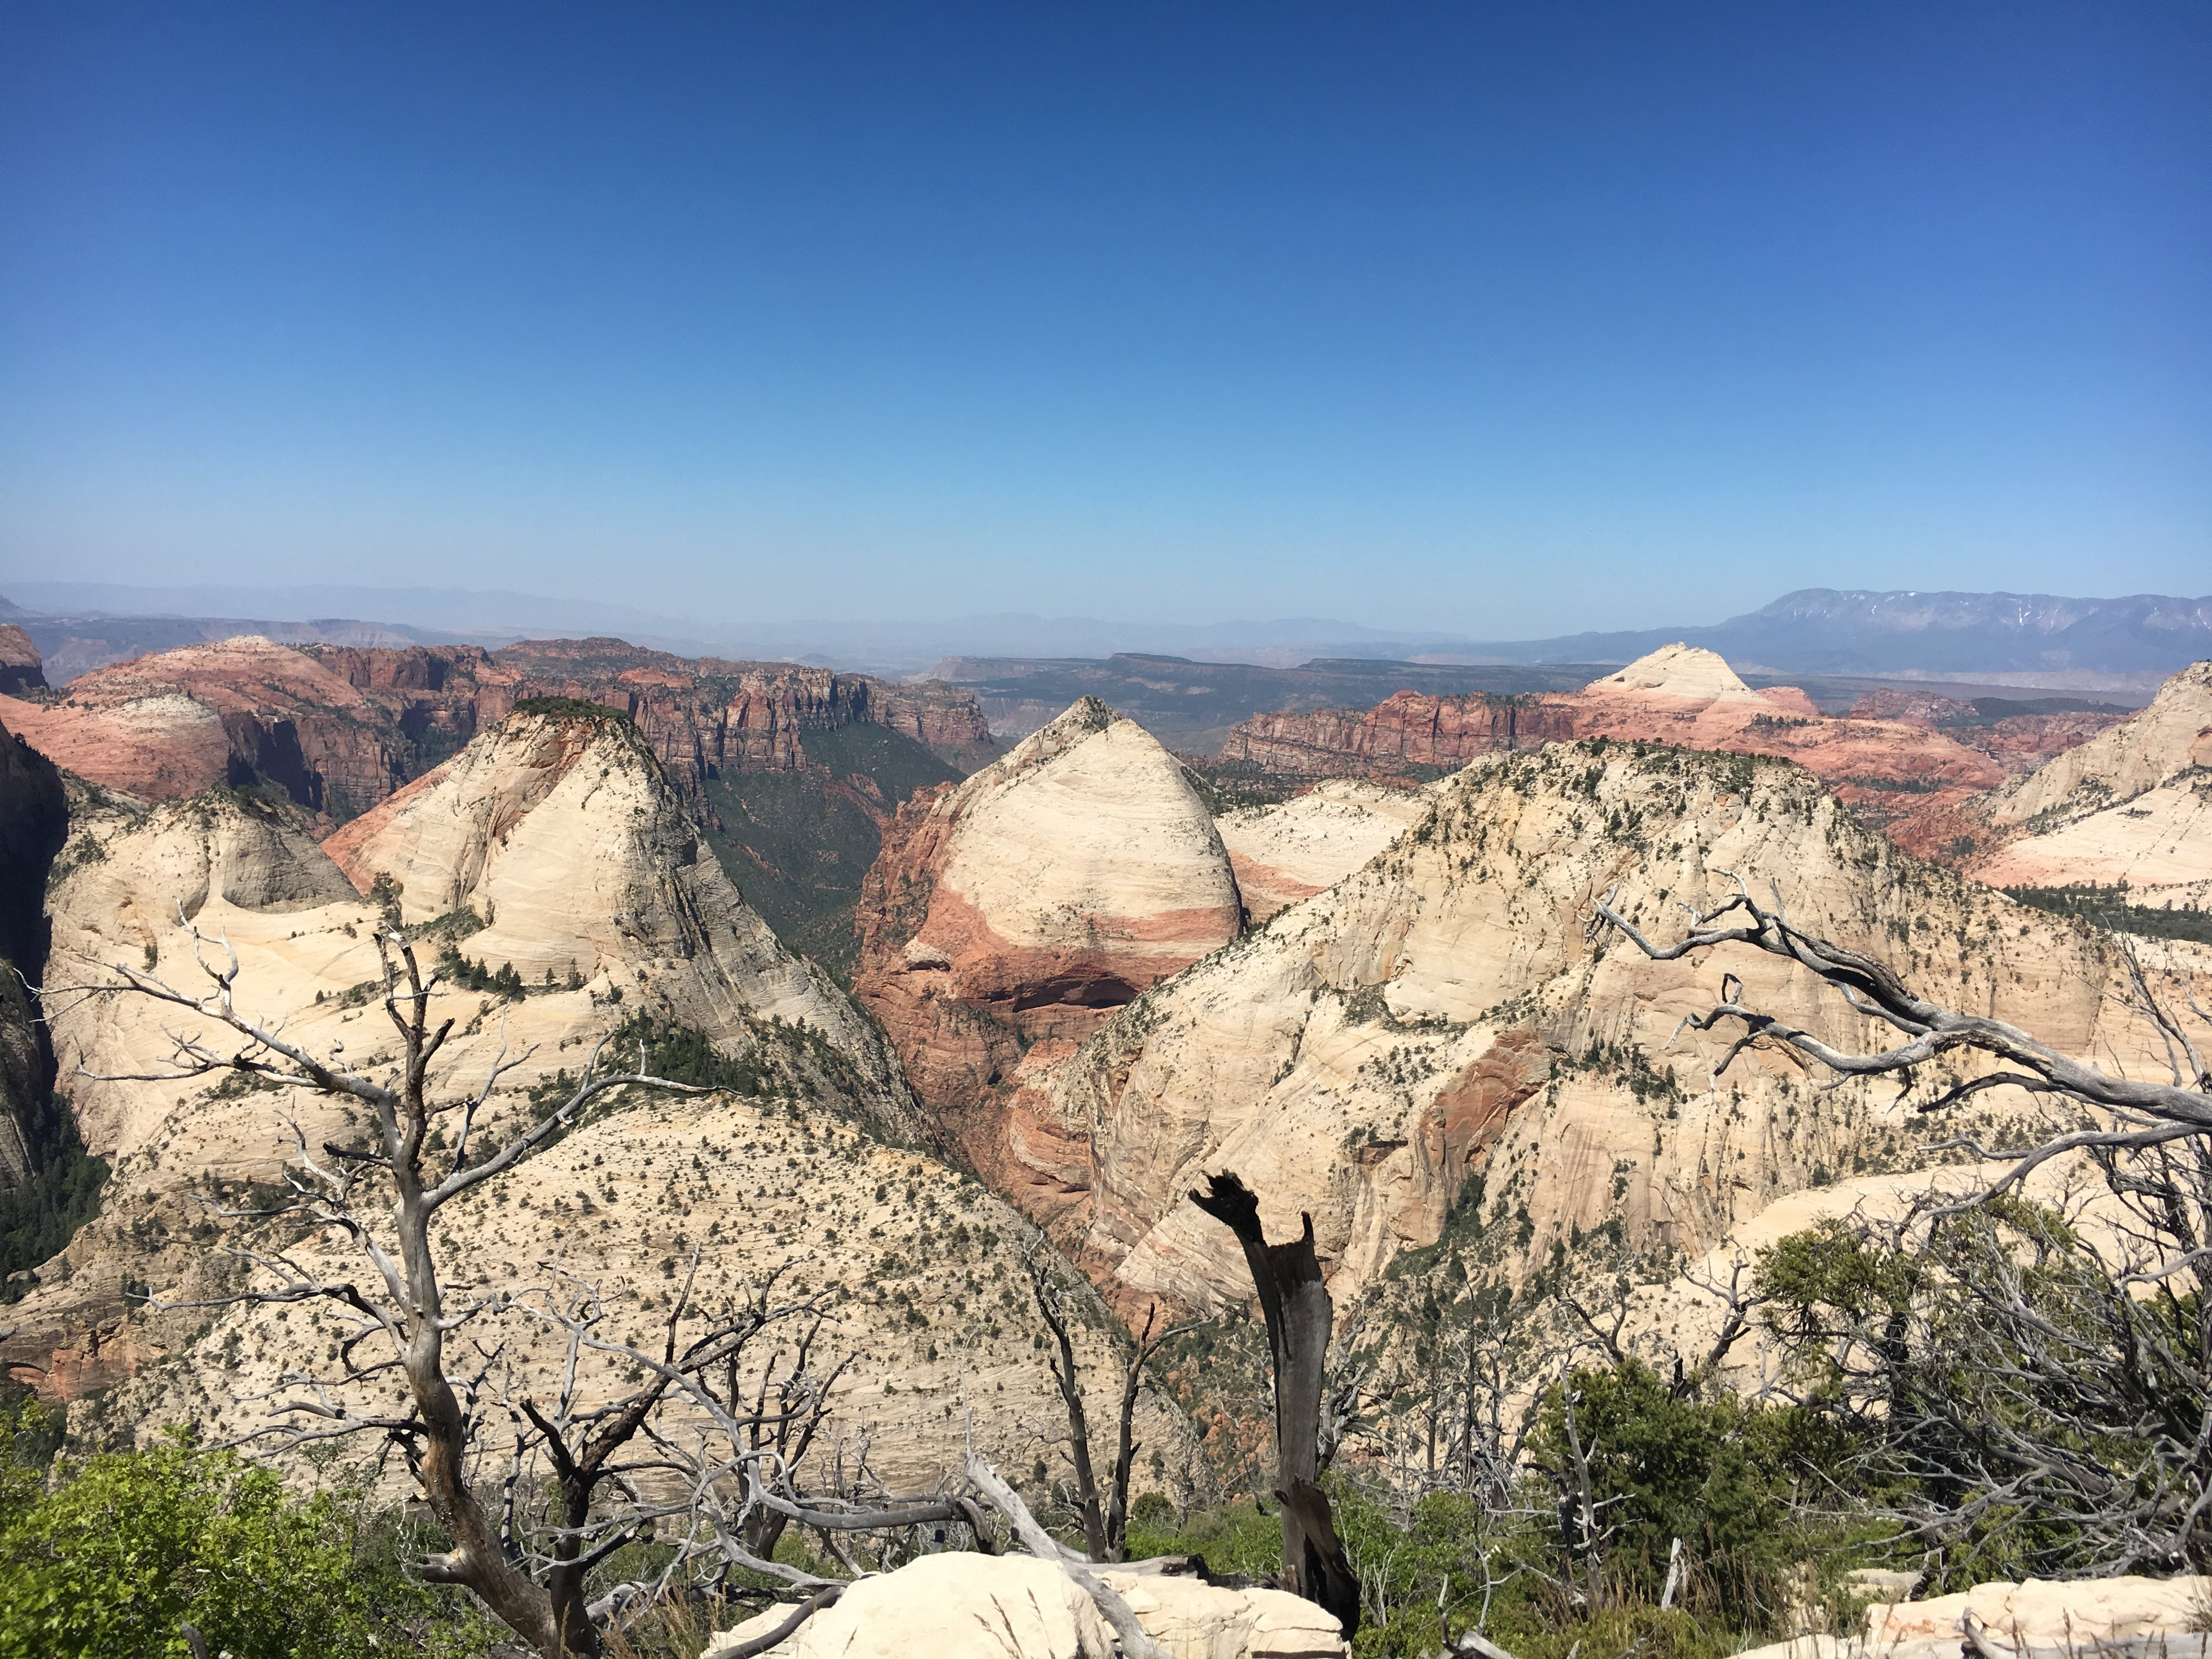 A view from the west rim in Zion